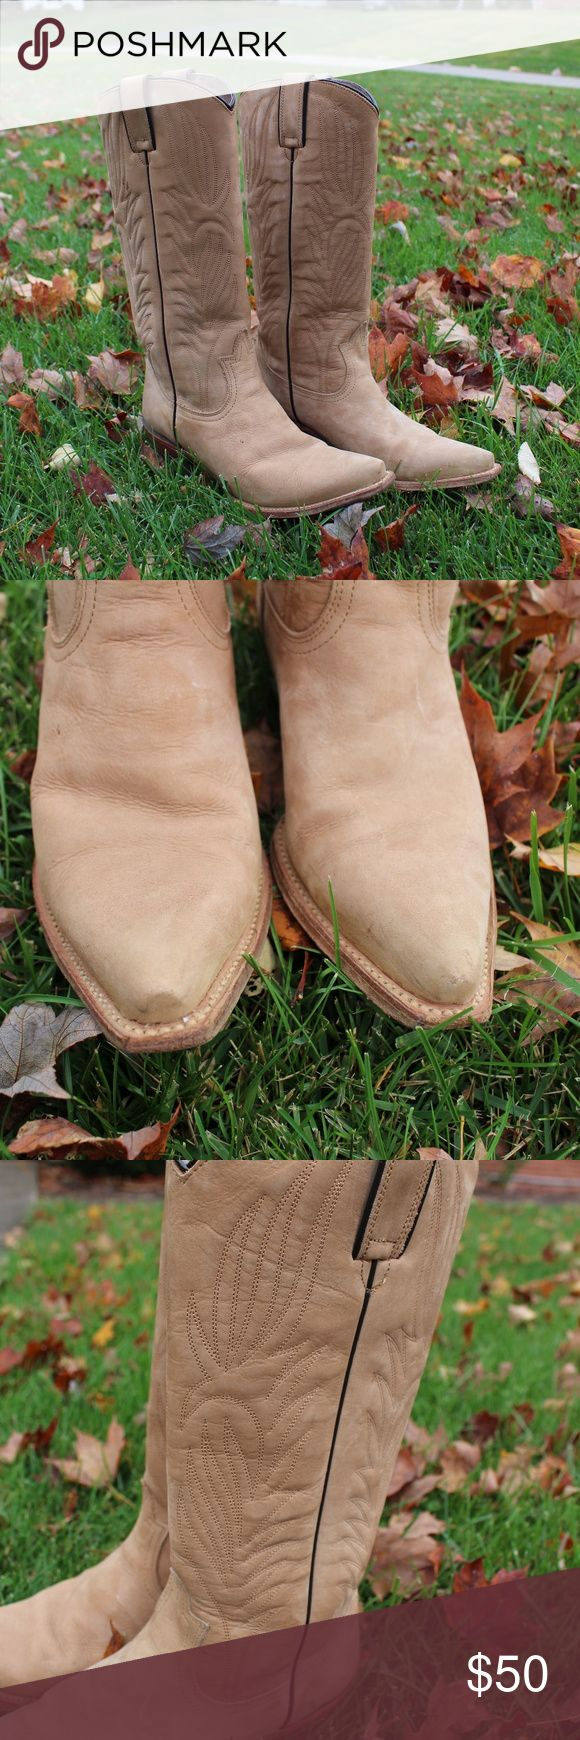 Steeve Madden Cowboy Boots Steve Madden. Tan cowboy boots. Size 7M. All Leather (details in 4th photo) EXCELLENT CONDITION :) Steve Madden Shoes Ankle Boots & Booties